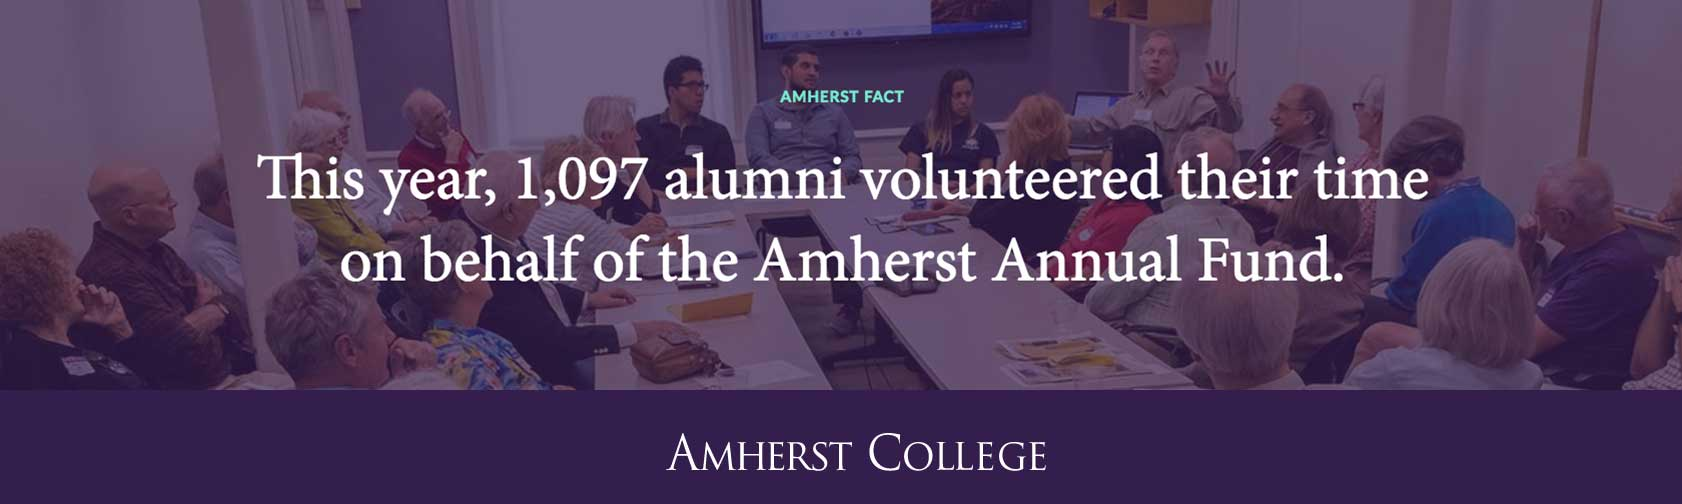 Give to the Amherst Annual Fund